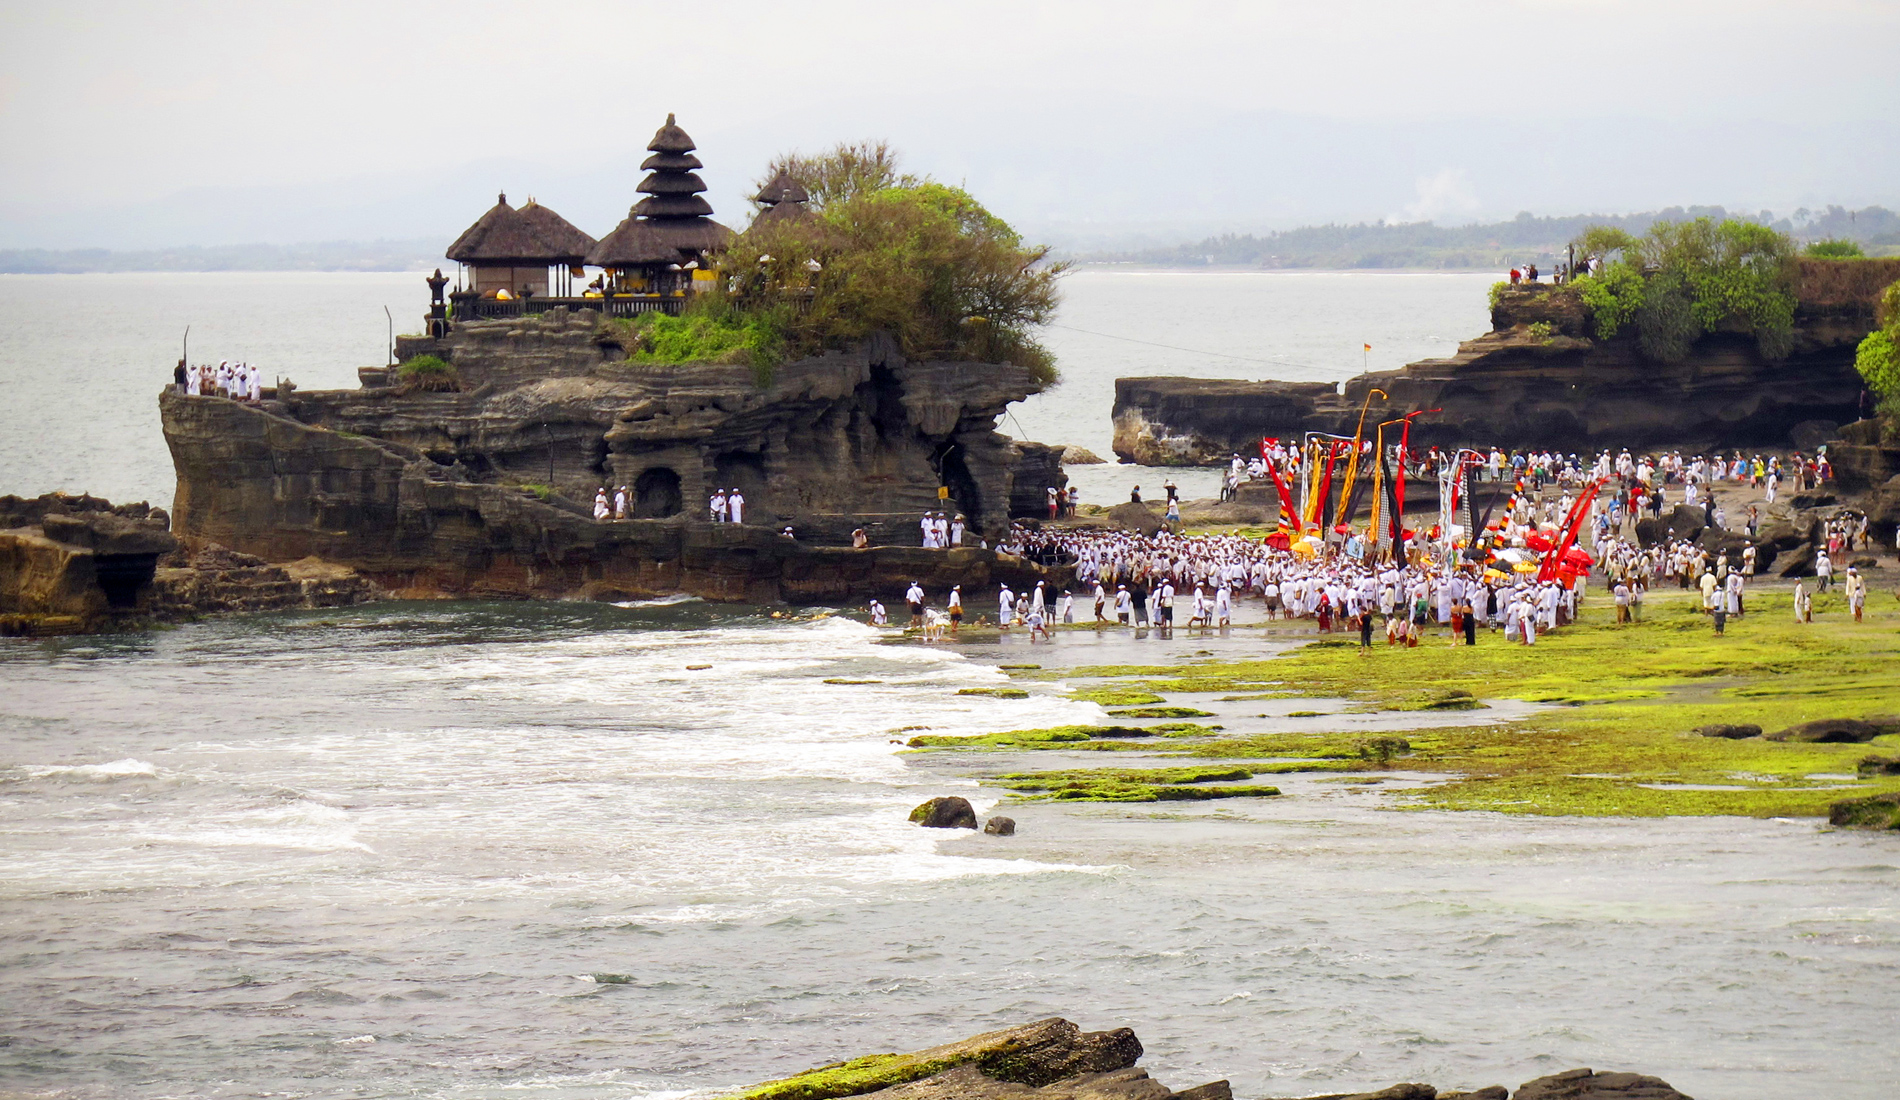 Tanah - Things To Do in Bali Tours Activities